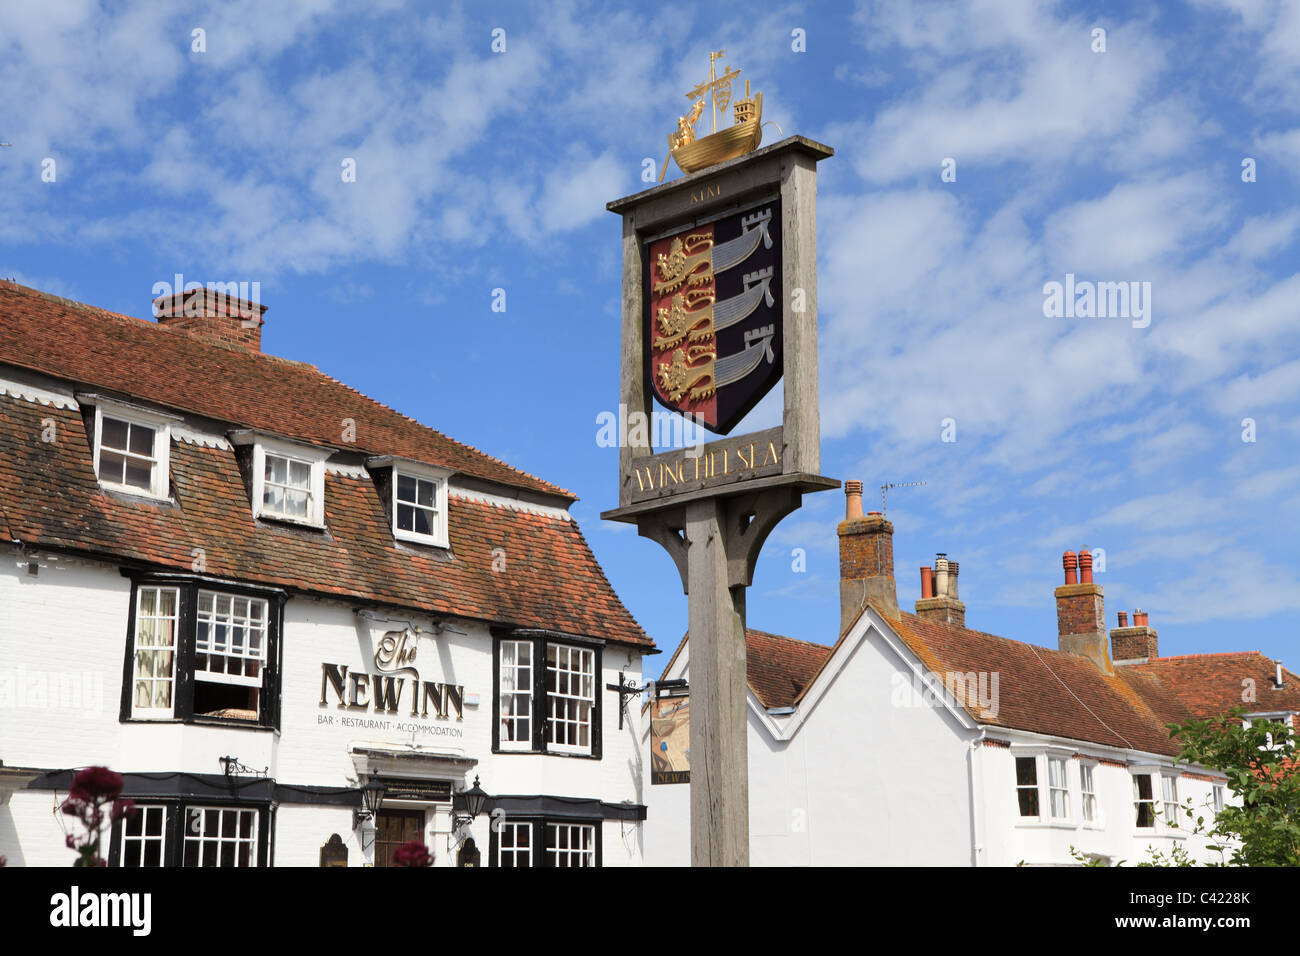 Winchelsea Town sign, East Sussex, England, UK, GB - Stock Image